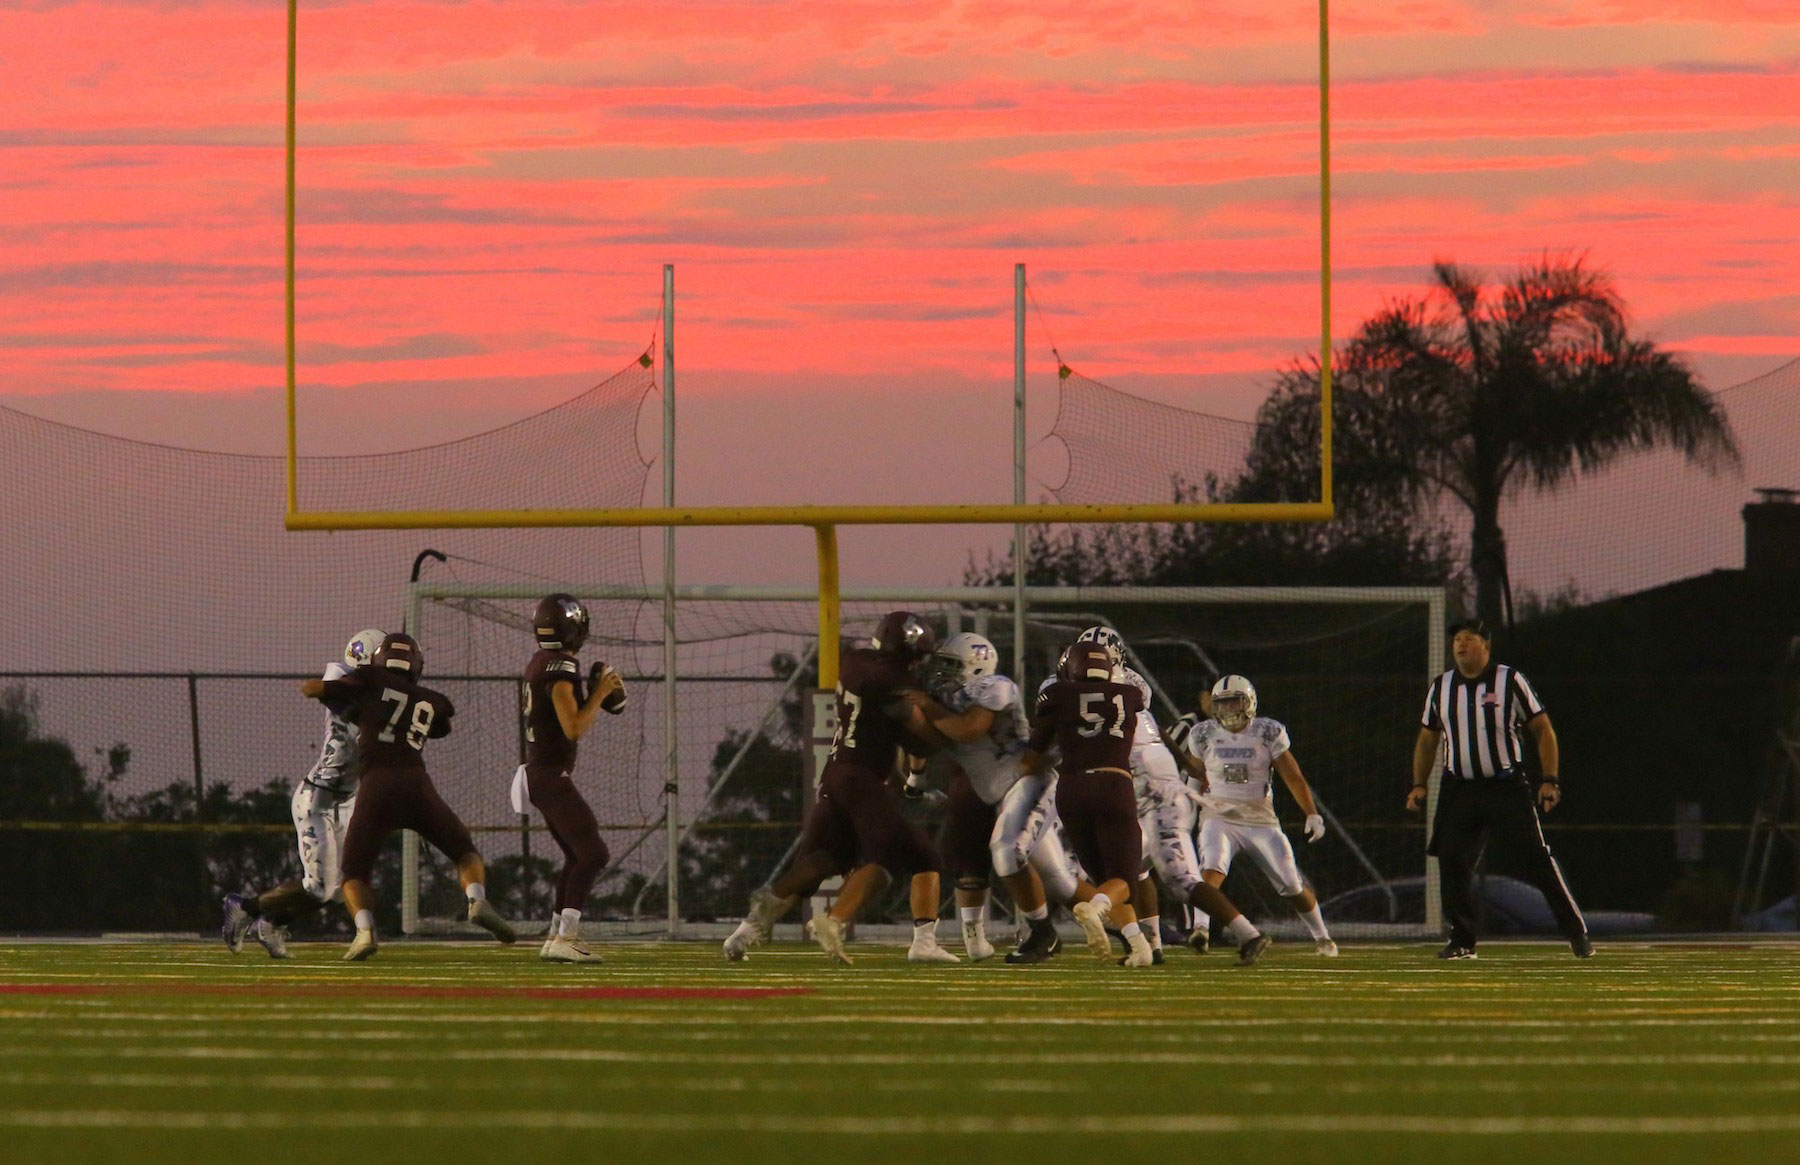 LBHS Football Sunset